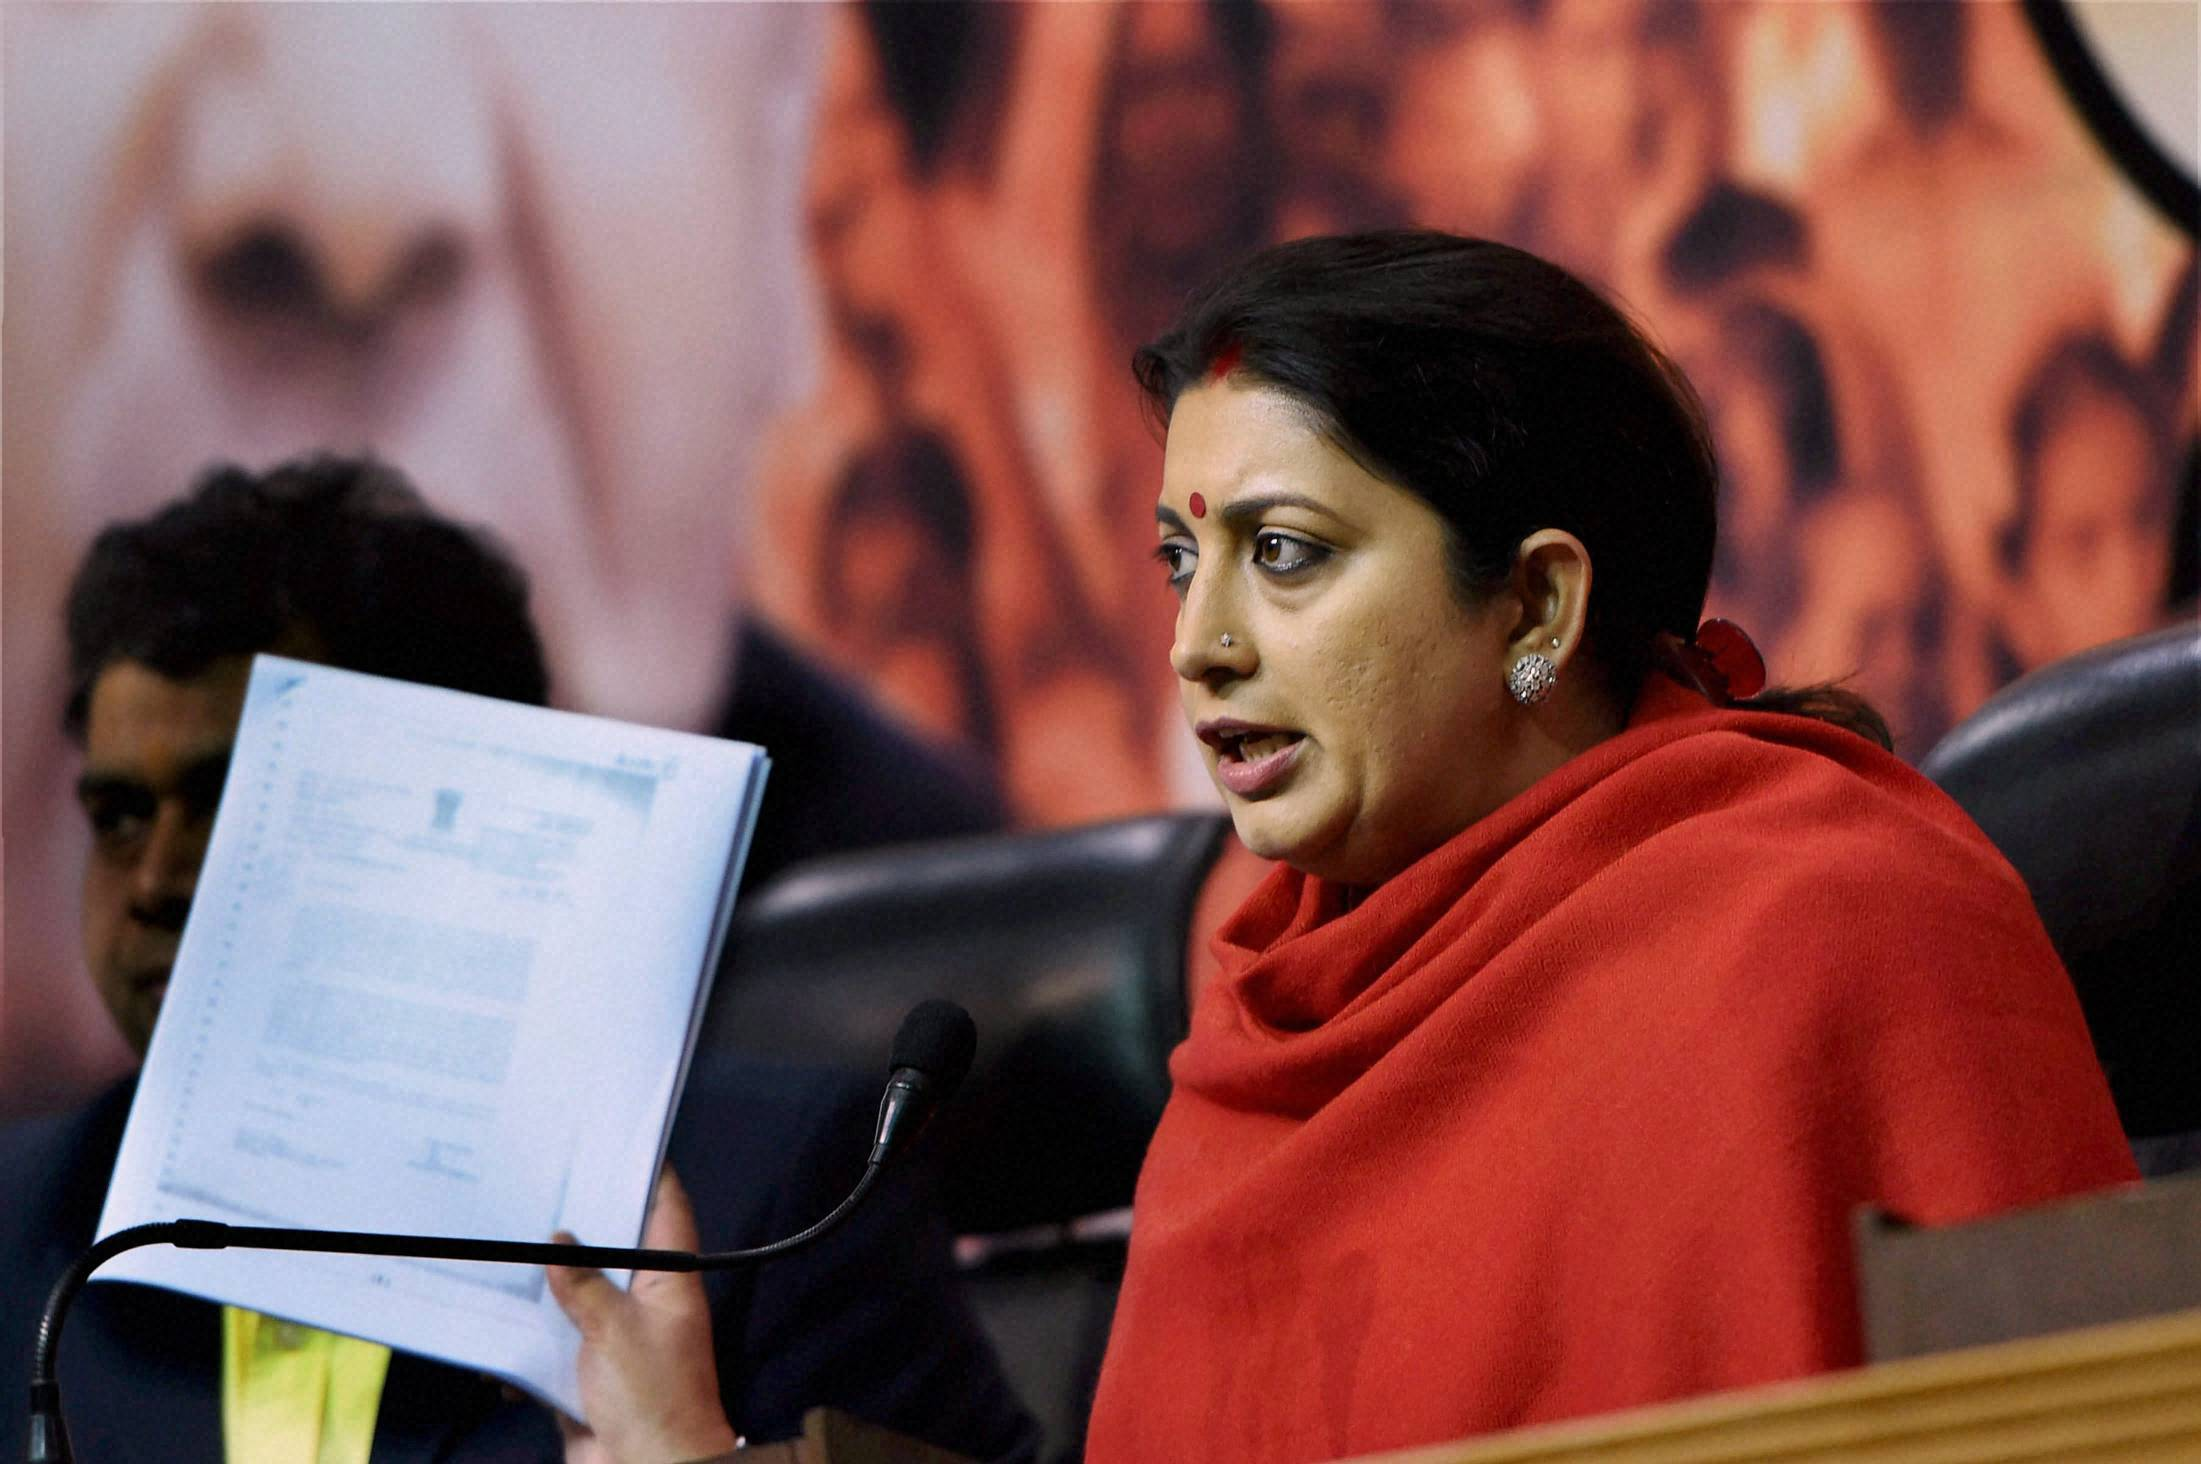 Don't Interact With Media Without Proper Authorisation, I&B Ministry Tells Officials